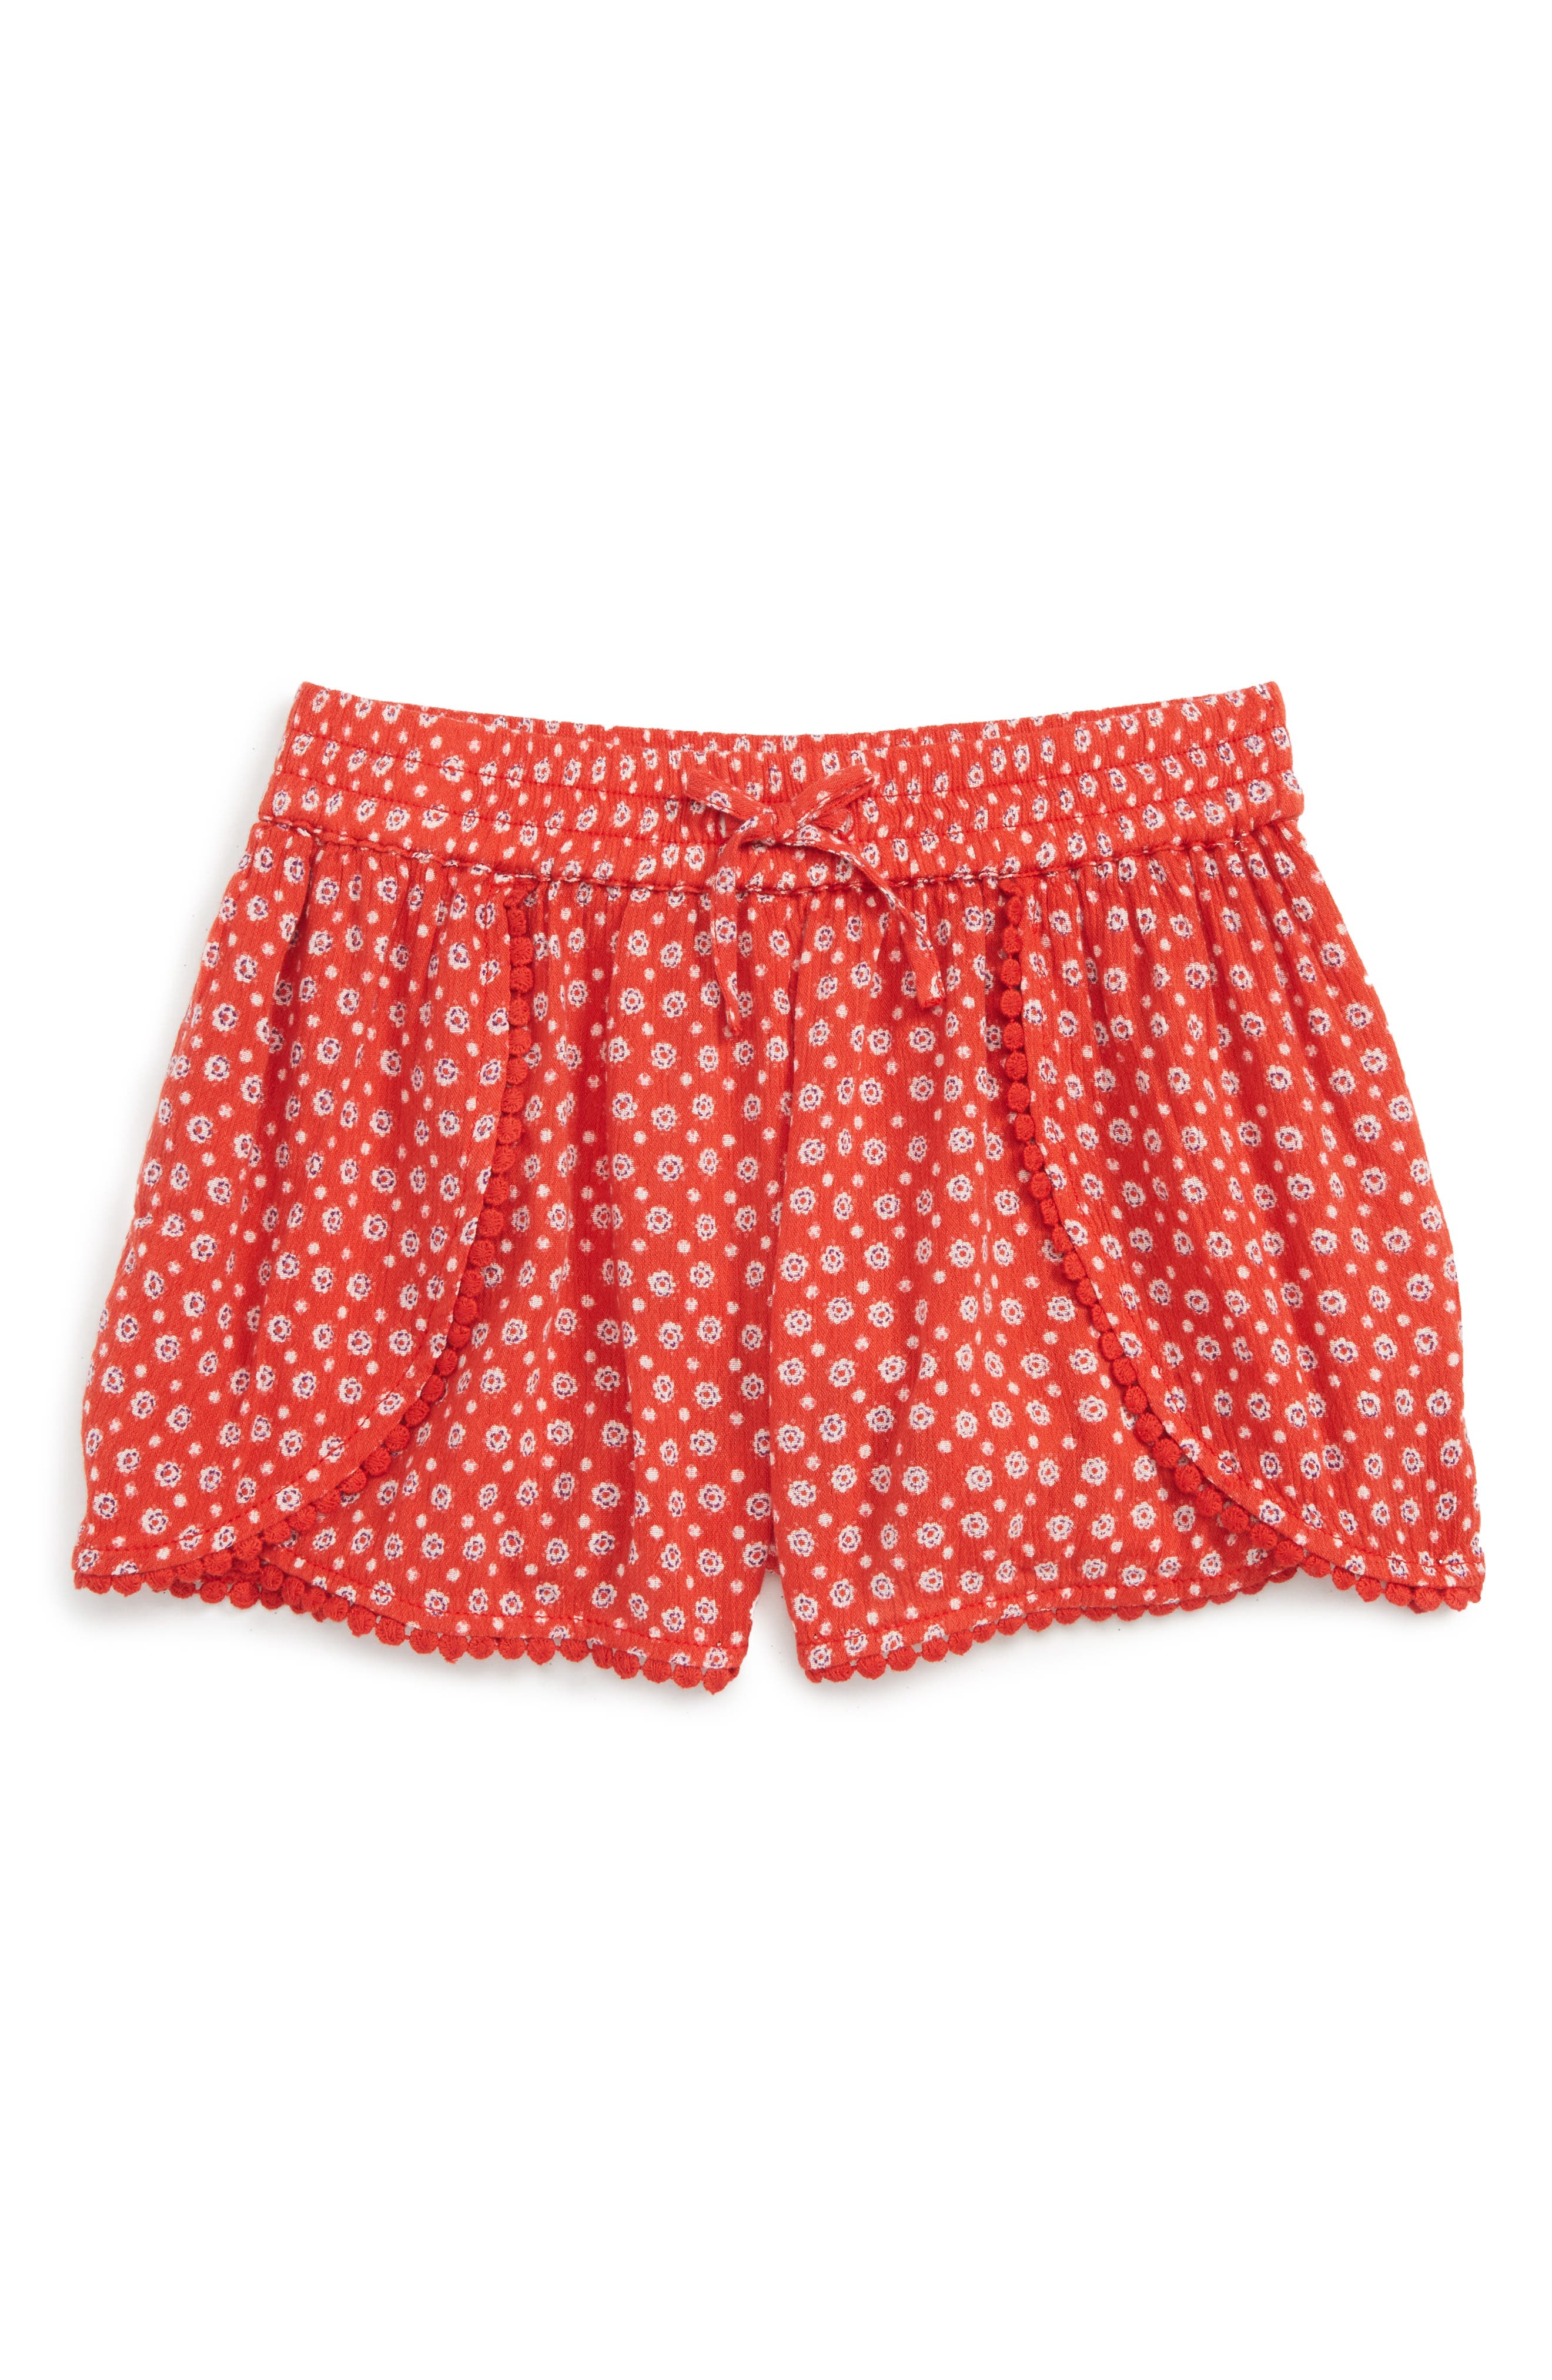 Print Shorts,                         Main,                         color, Red Lava Spotty Floral